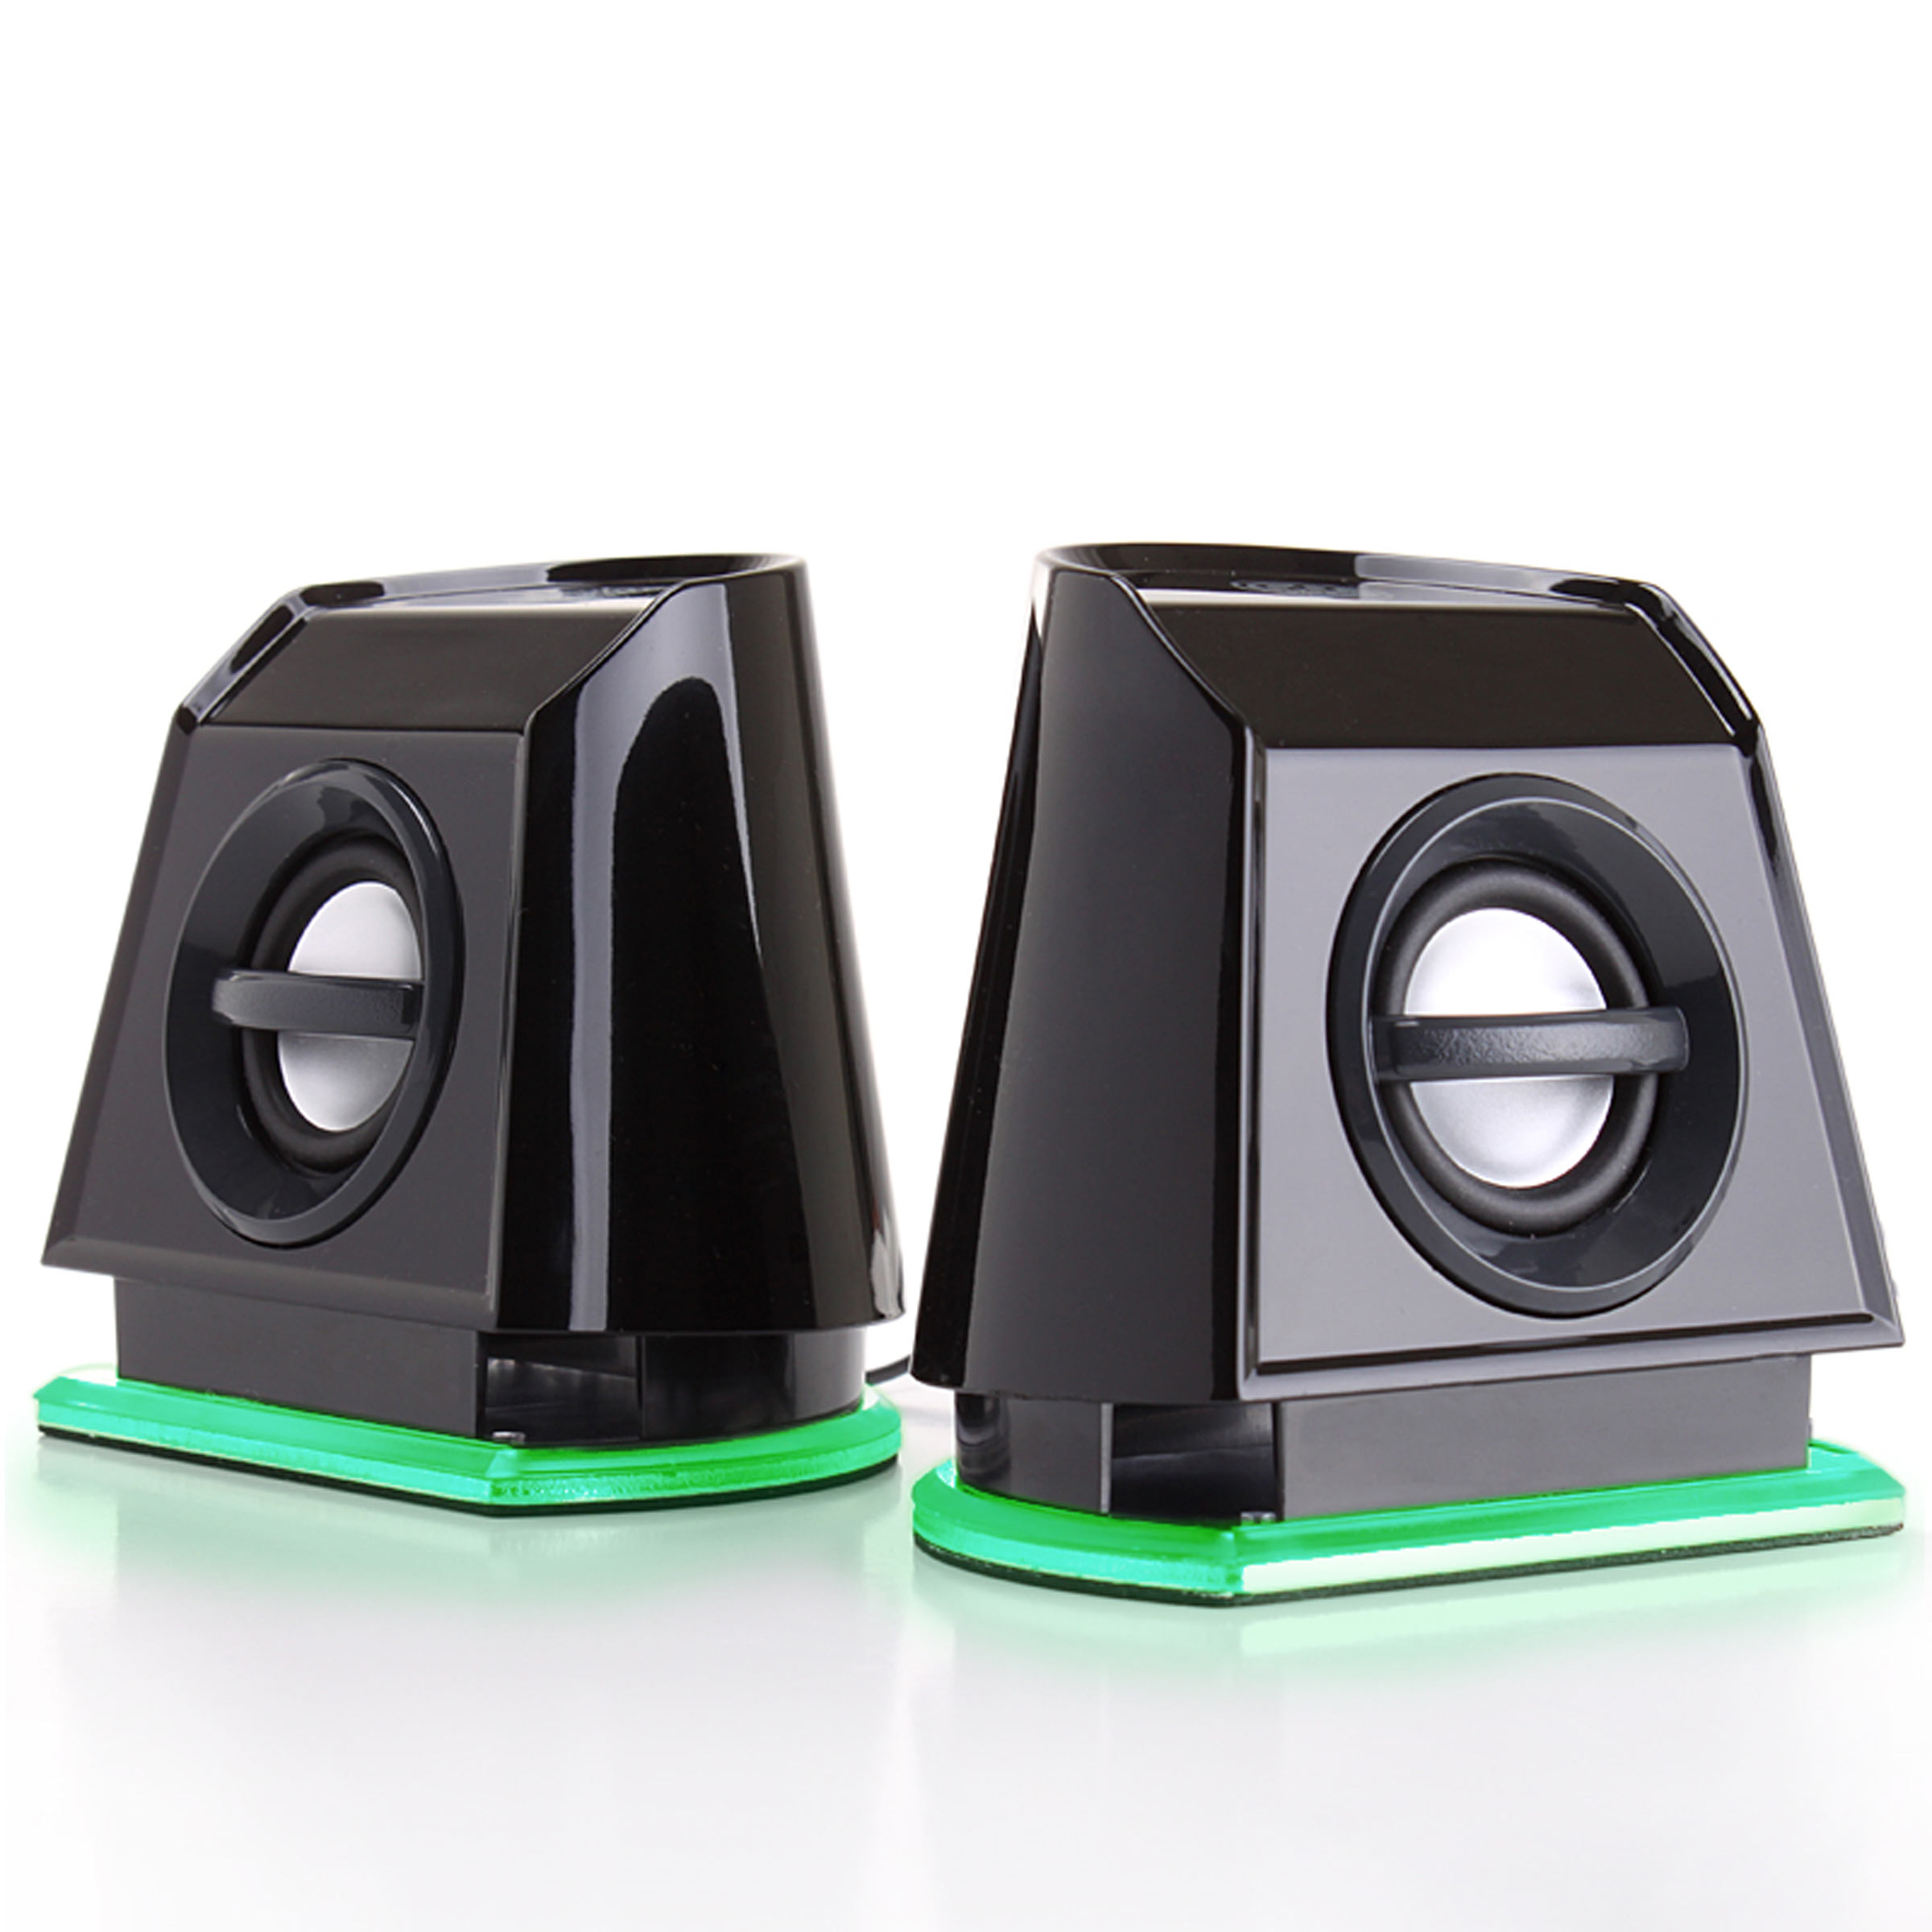 GOgroove BassPULSE 2MX Computer Speaker System with Universal USB Power and Glowing LED Base for Laptops and... by Gogroove